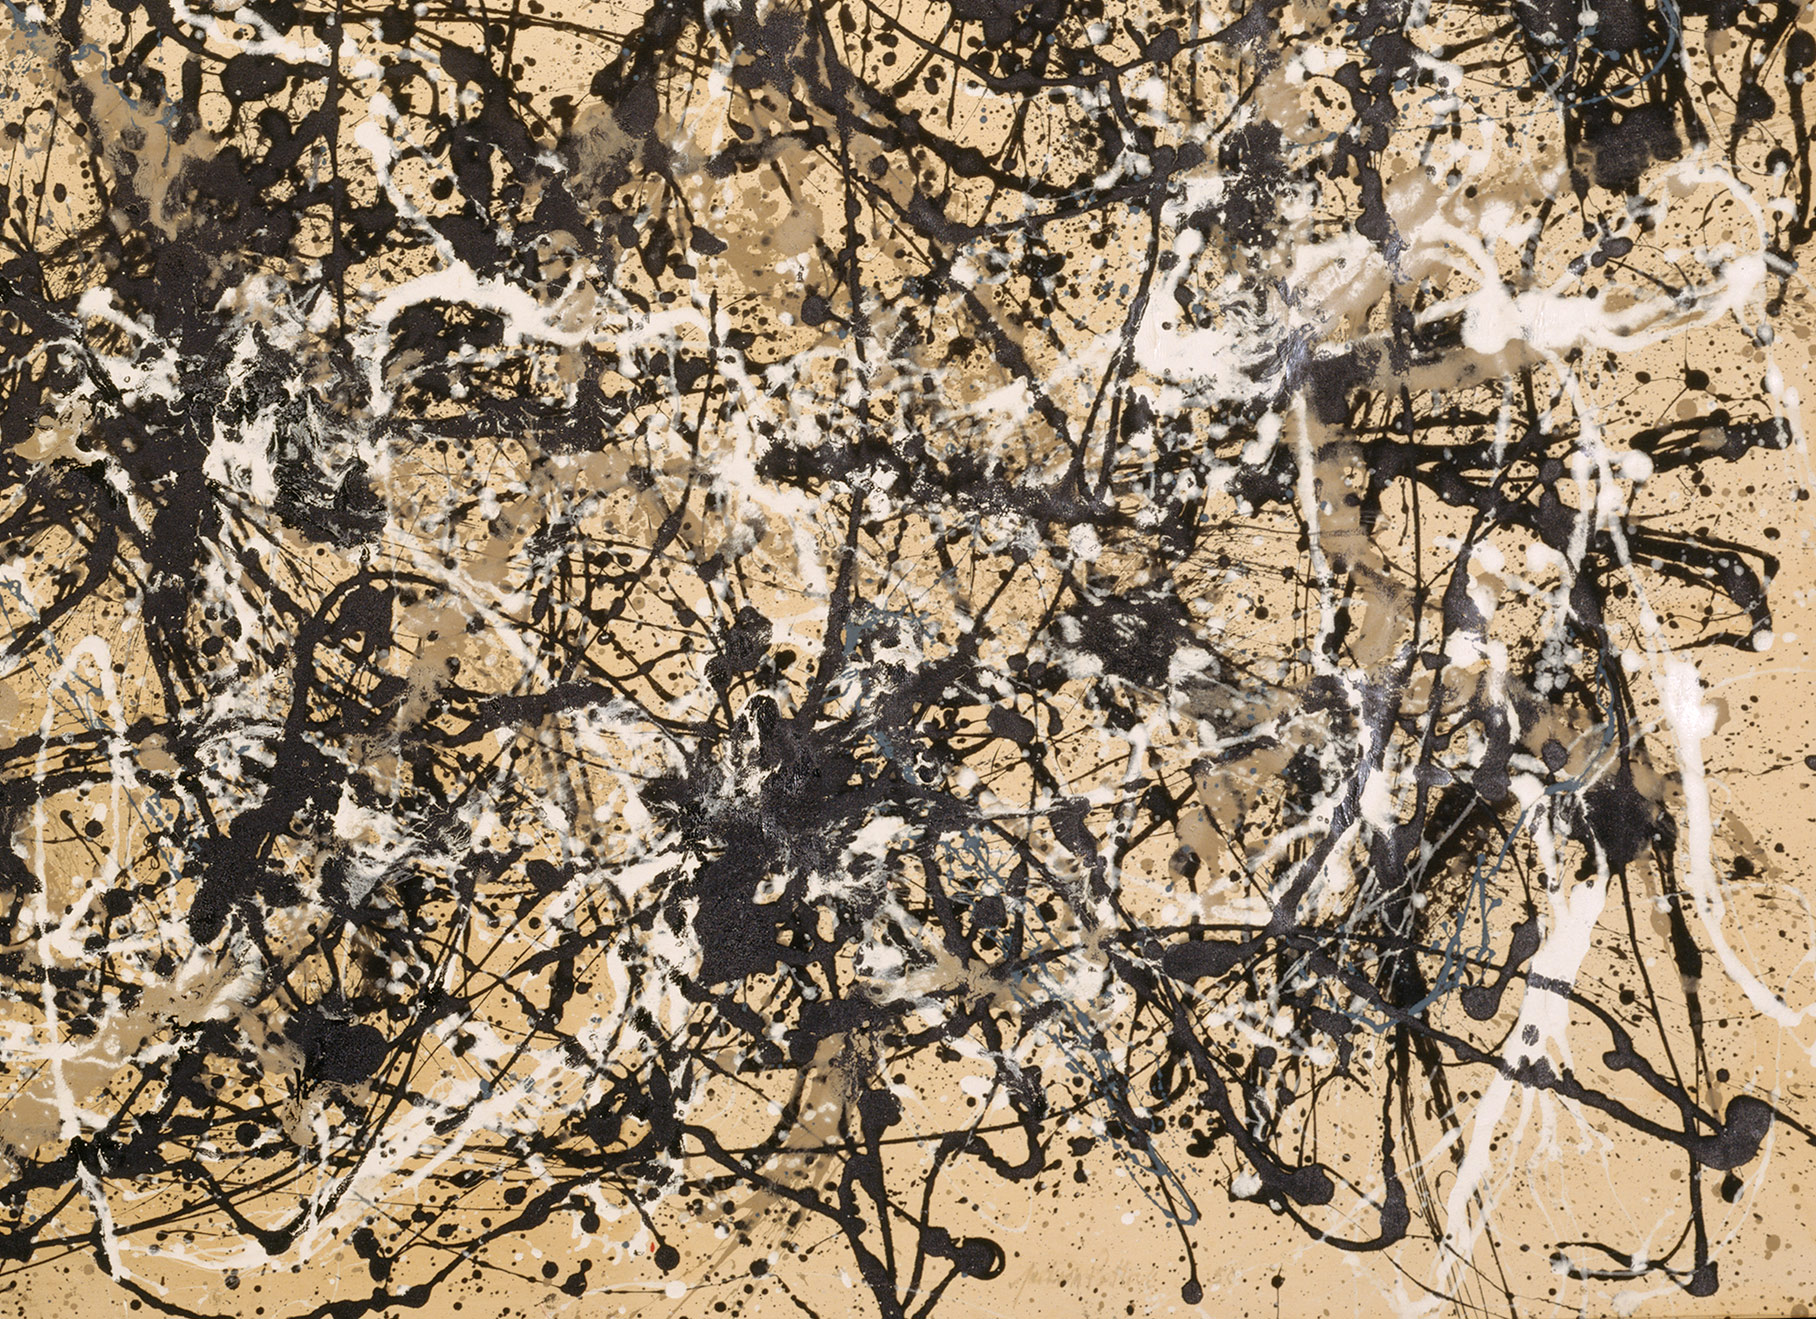 autumn rhythm number jackson pollock work of art autumn rhythm number 30